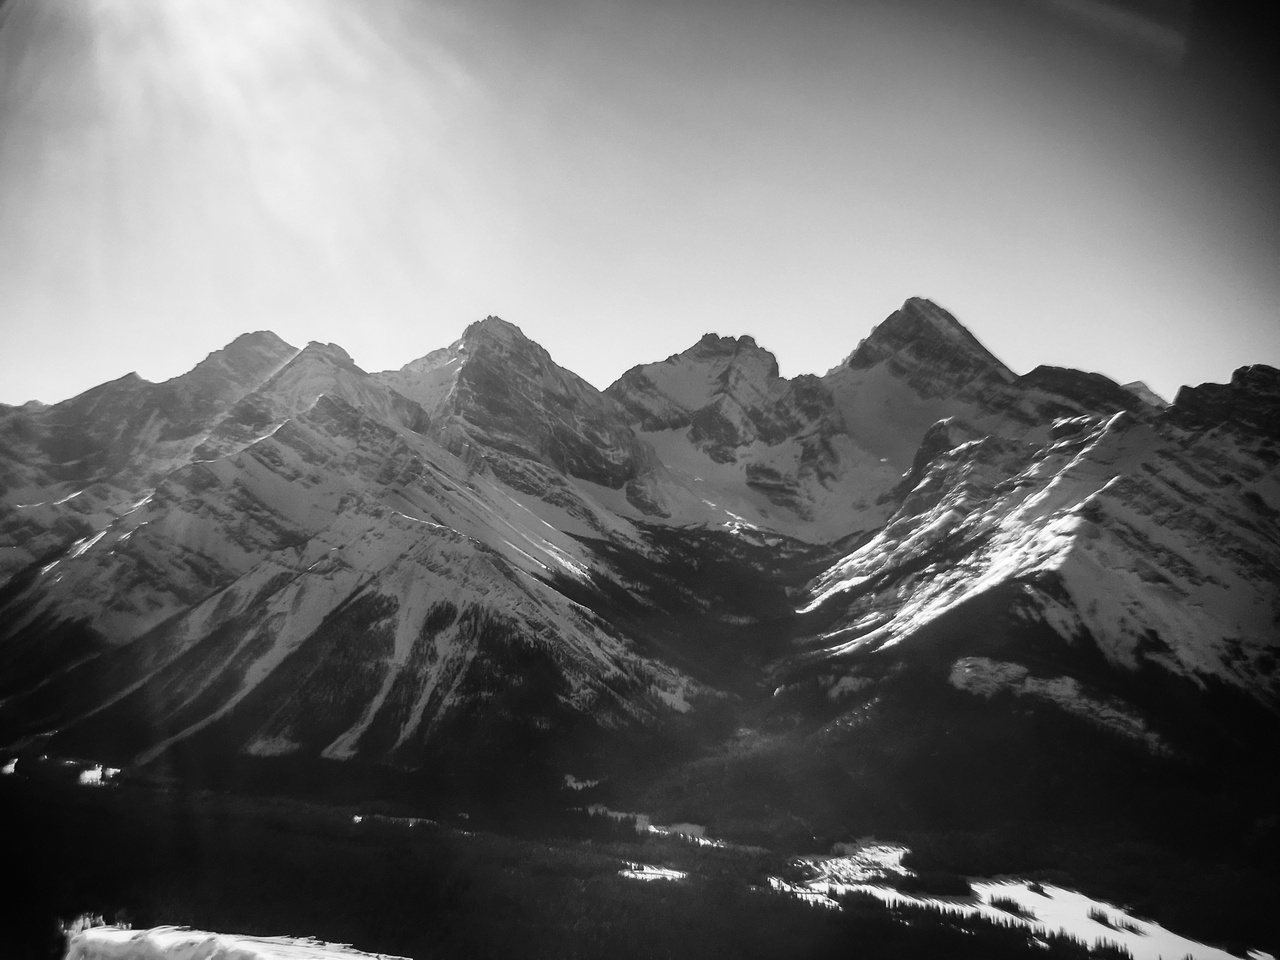 The giants of the Haig Icefield include Sir Douglas, Robertson, French and Smith Dorrien (R to L).